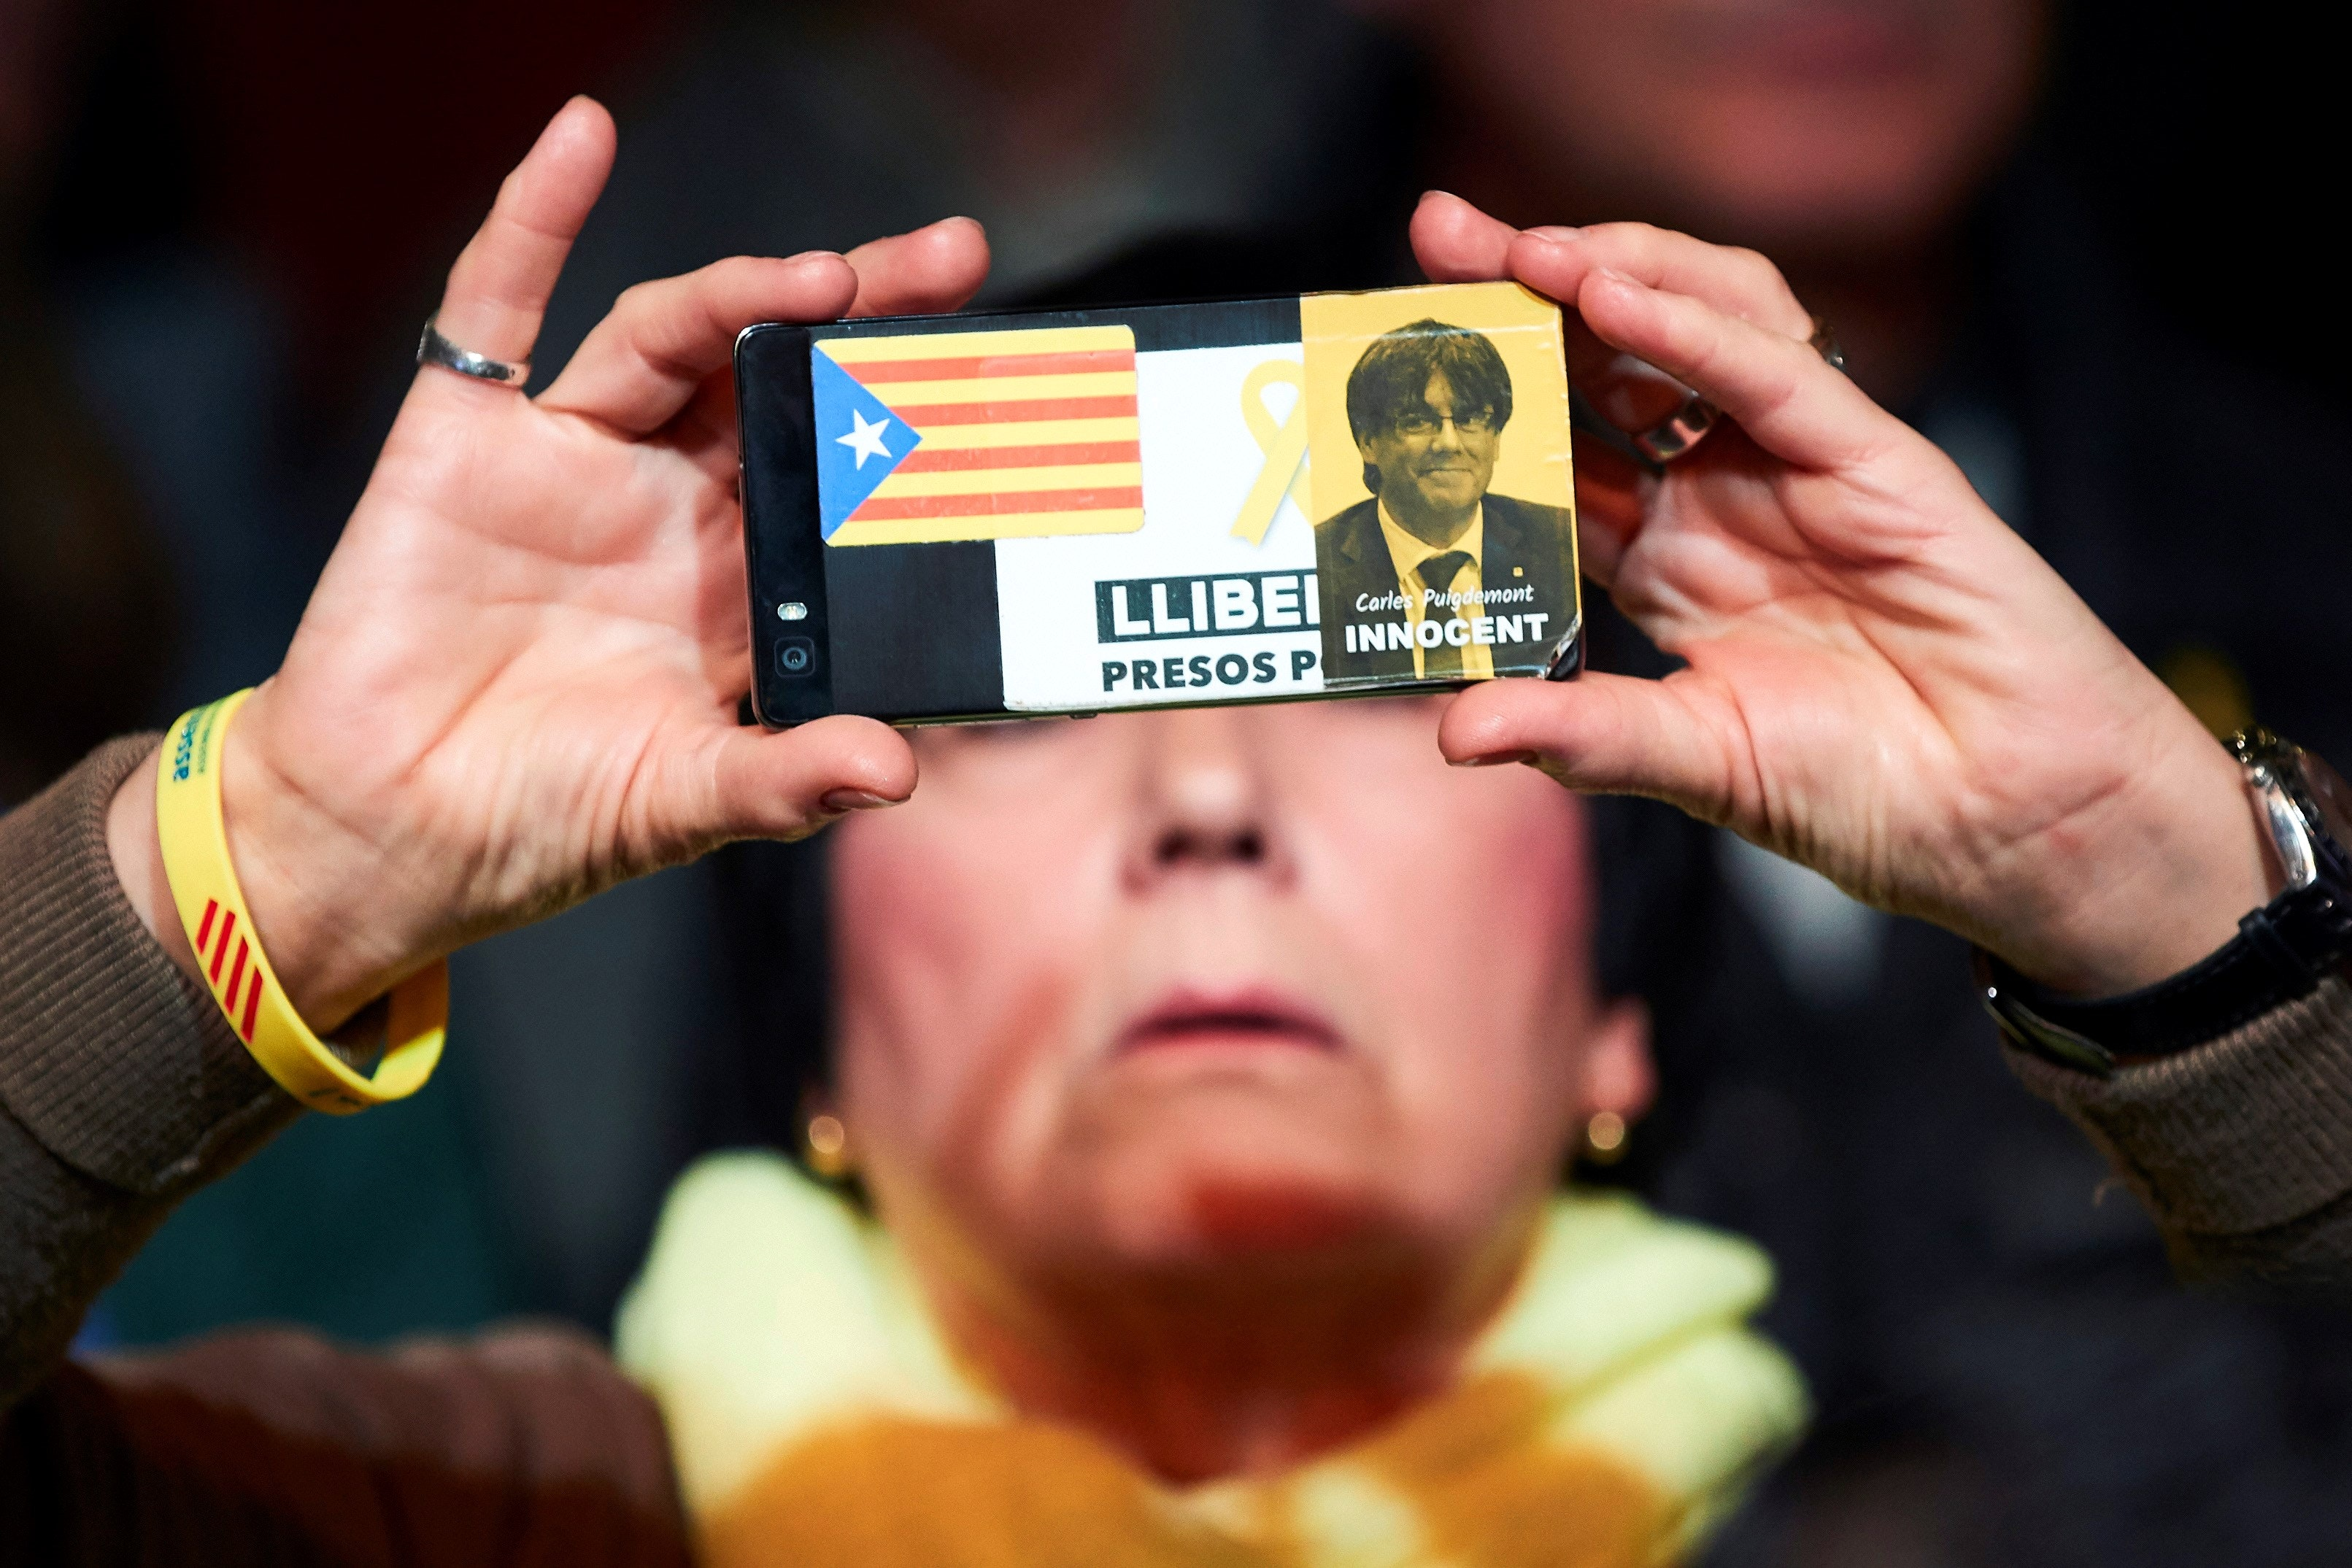 Spain: Catalan question dominates ahead of wildly uncertain election